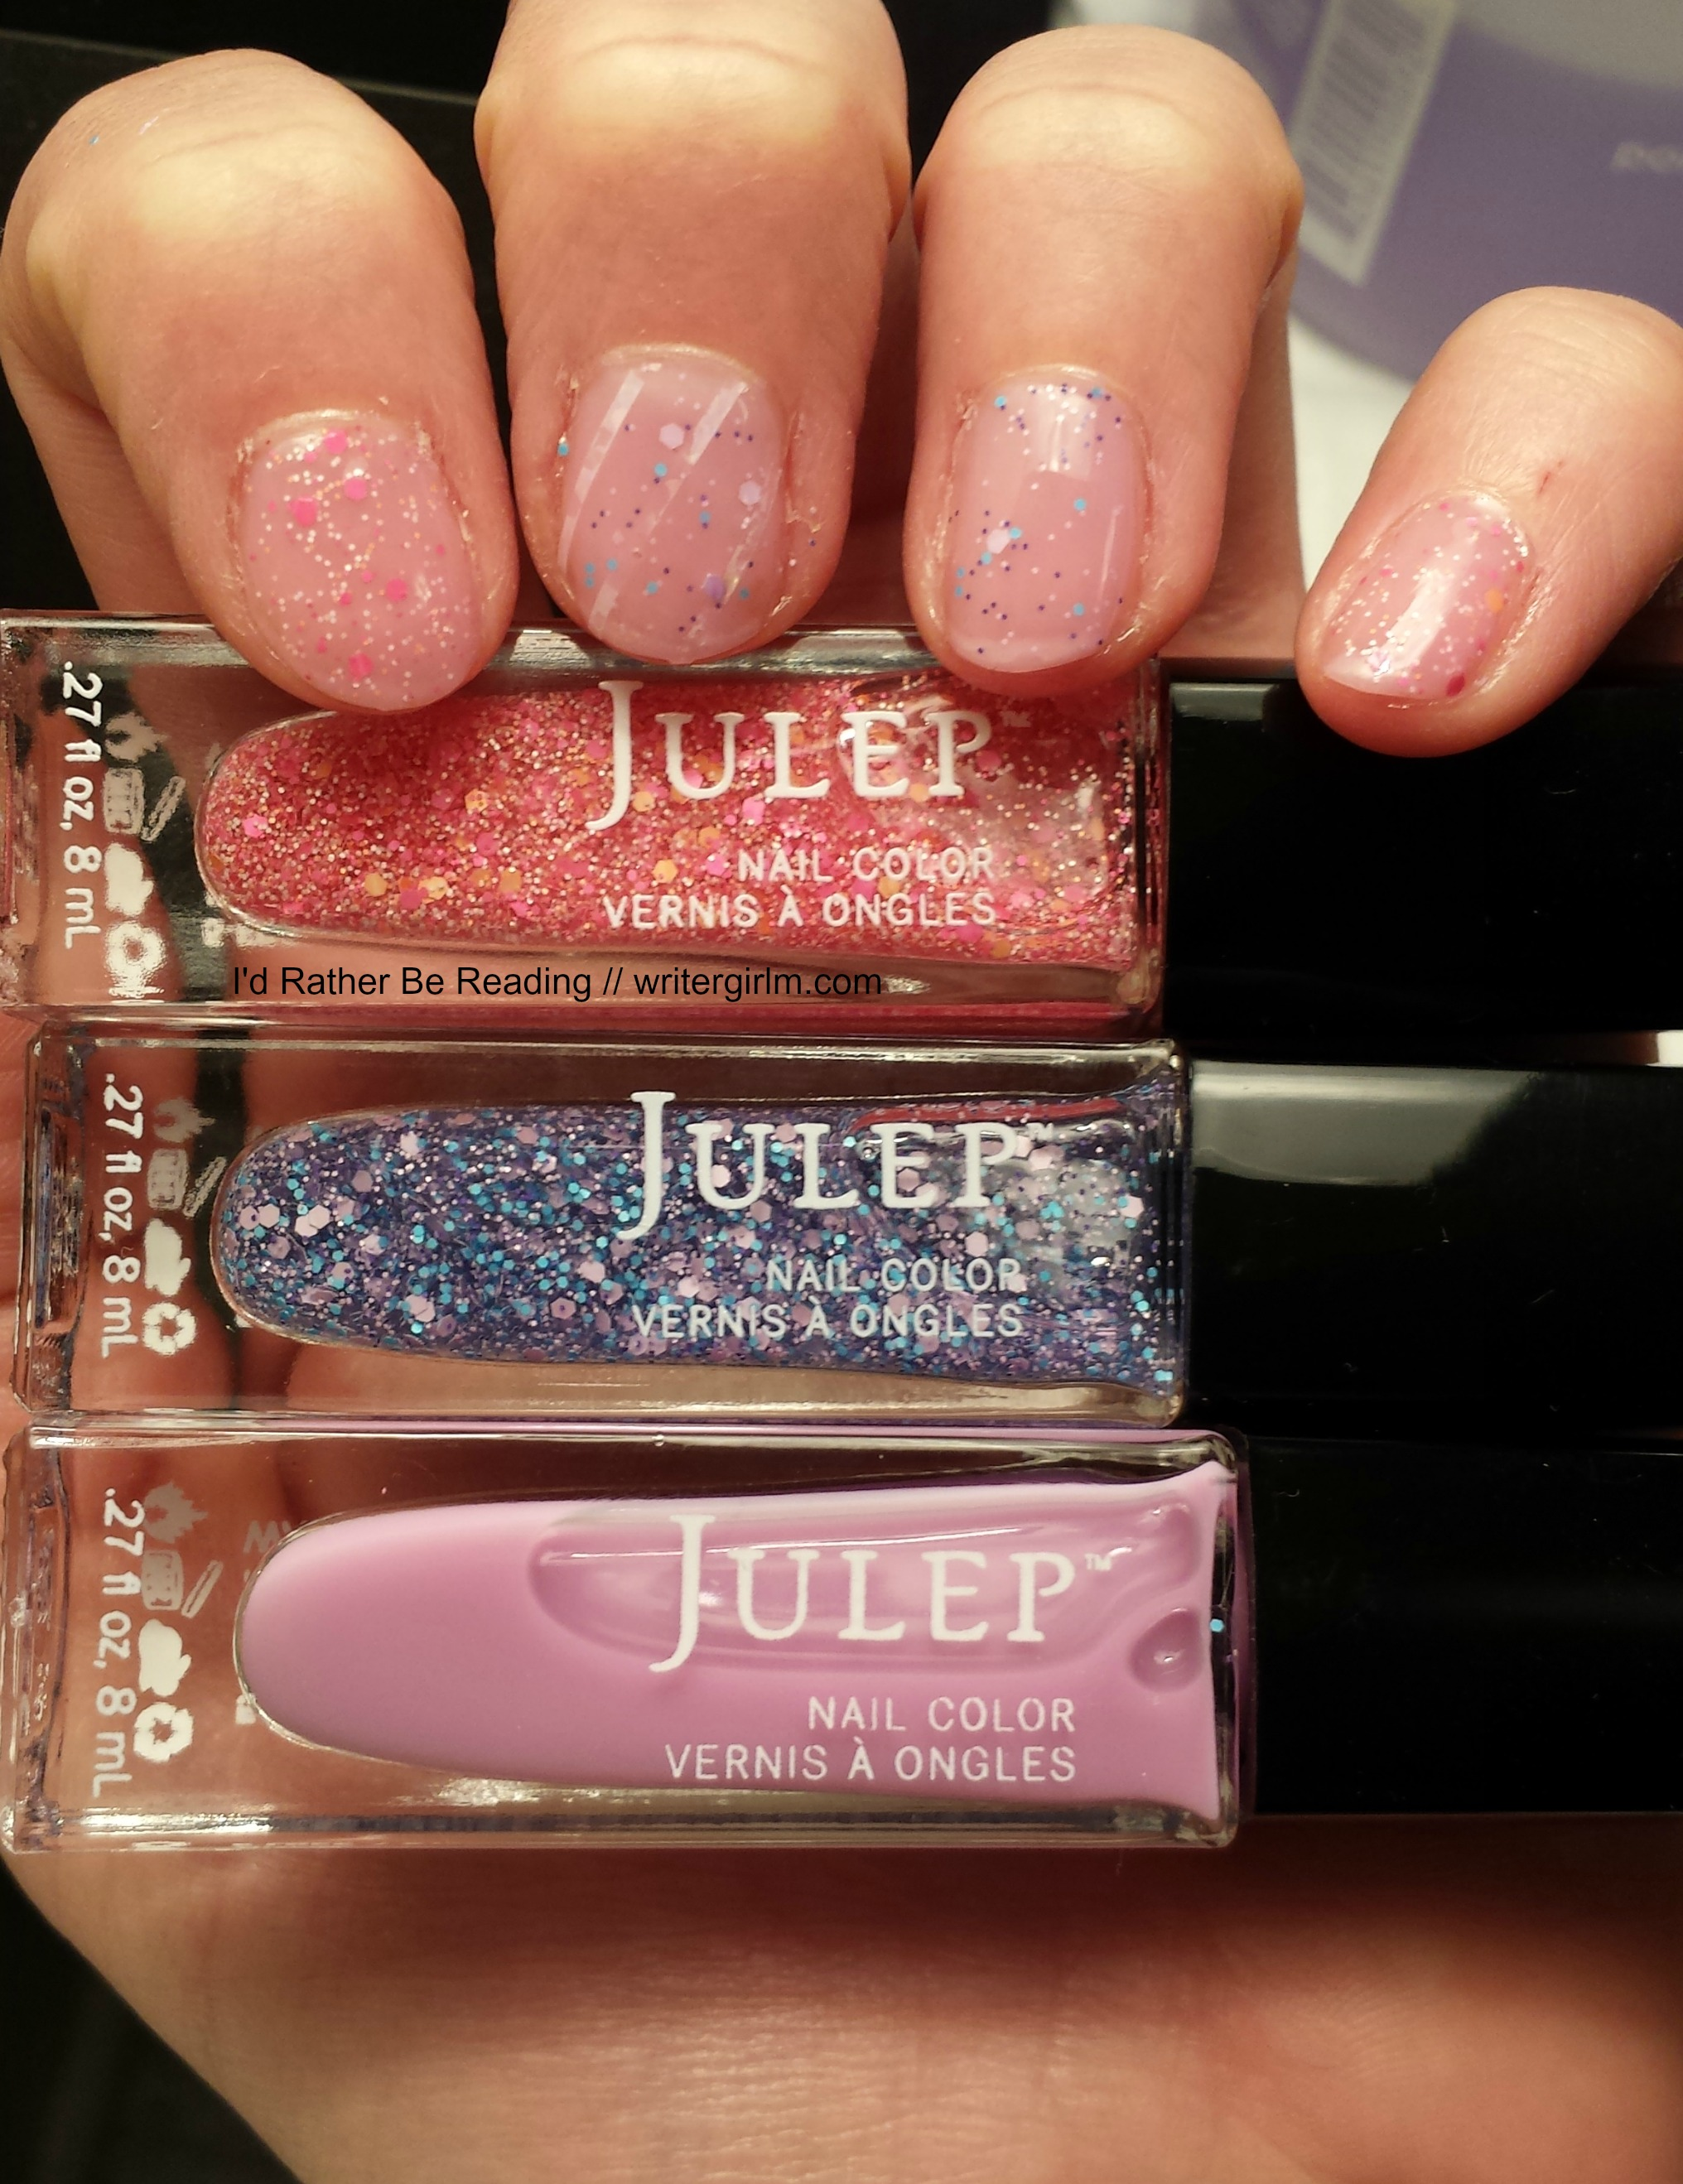 Nail art from my April 2017 Julep box!